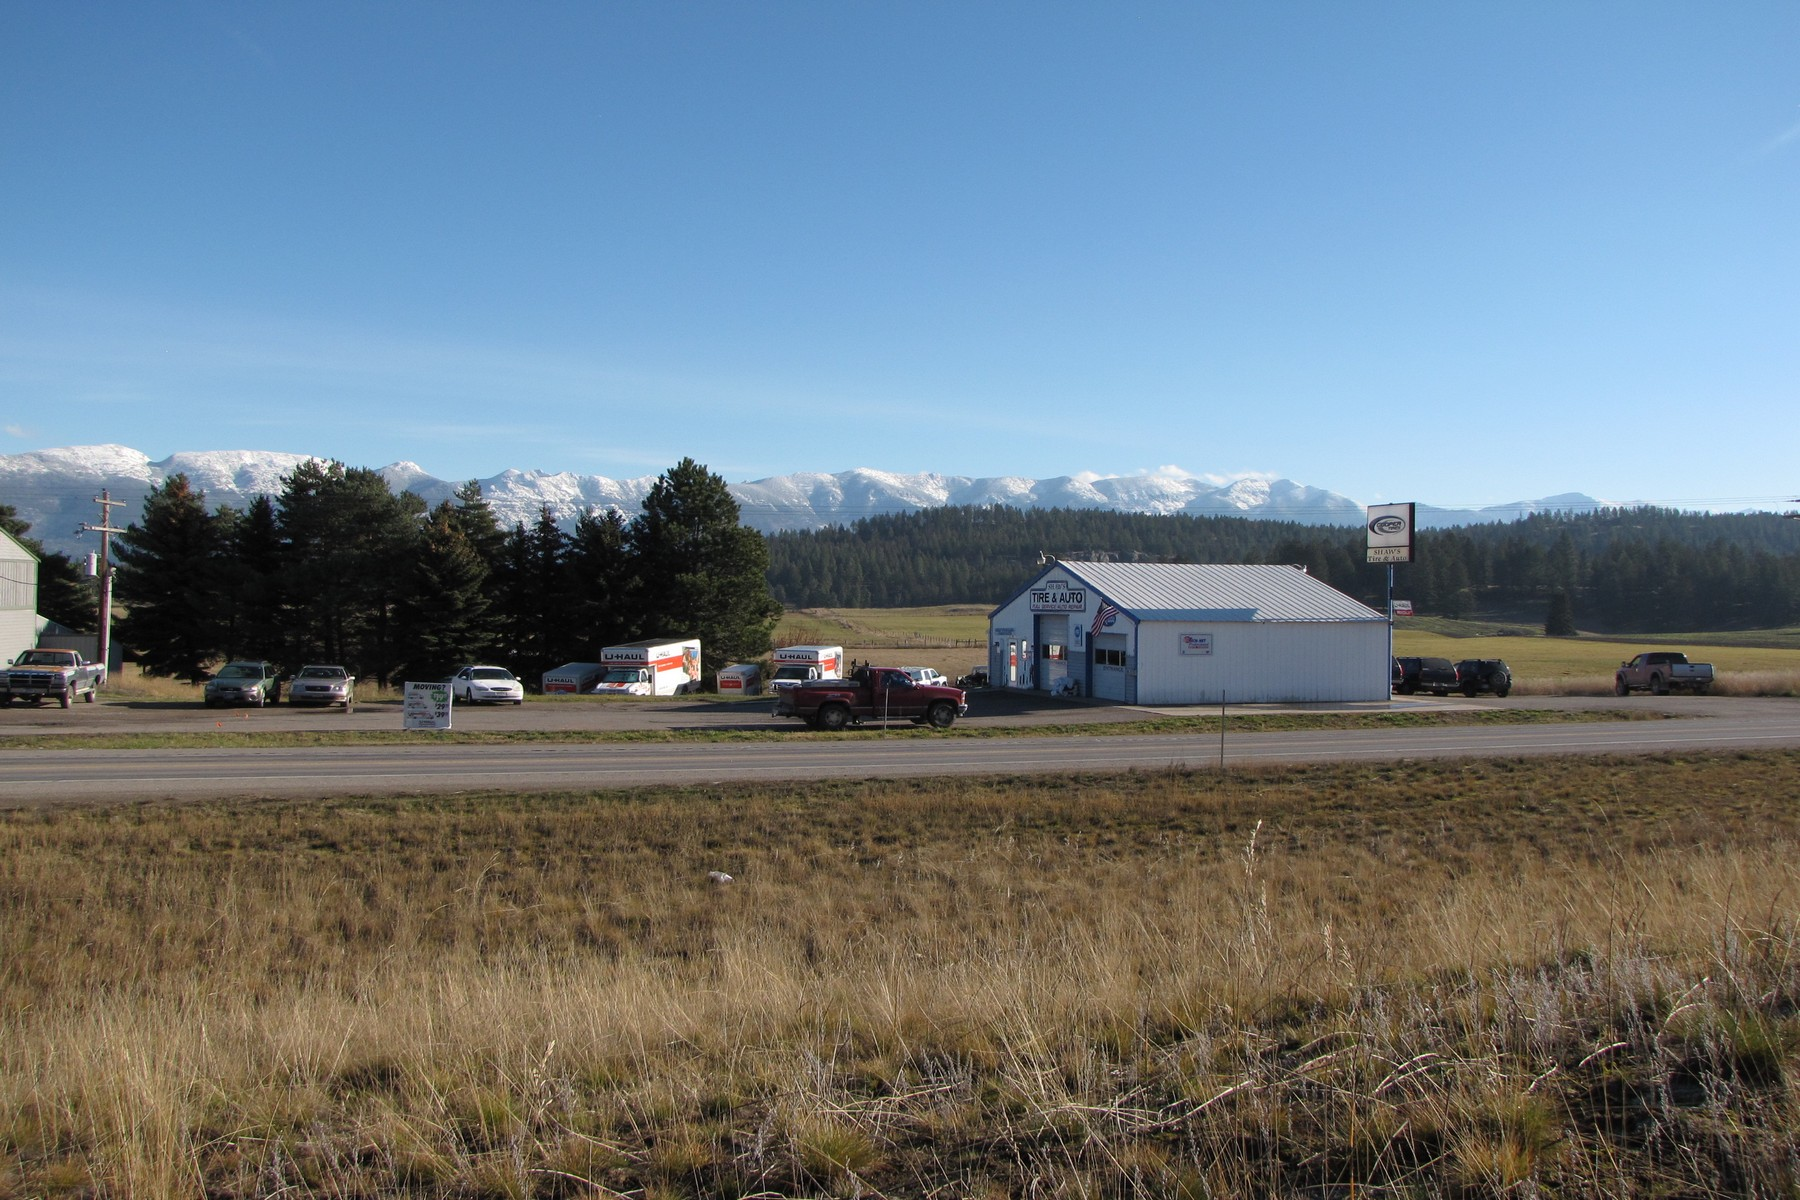 Additional photo for property listing at 7595 MT-35 Highway , land & bldg, Bigfork, MT 5991 7595  MT-35 Hwy land & bldg Bigfork, Montana 59911 United States